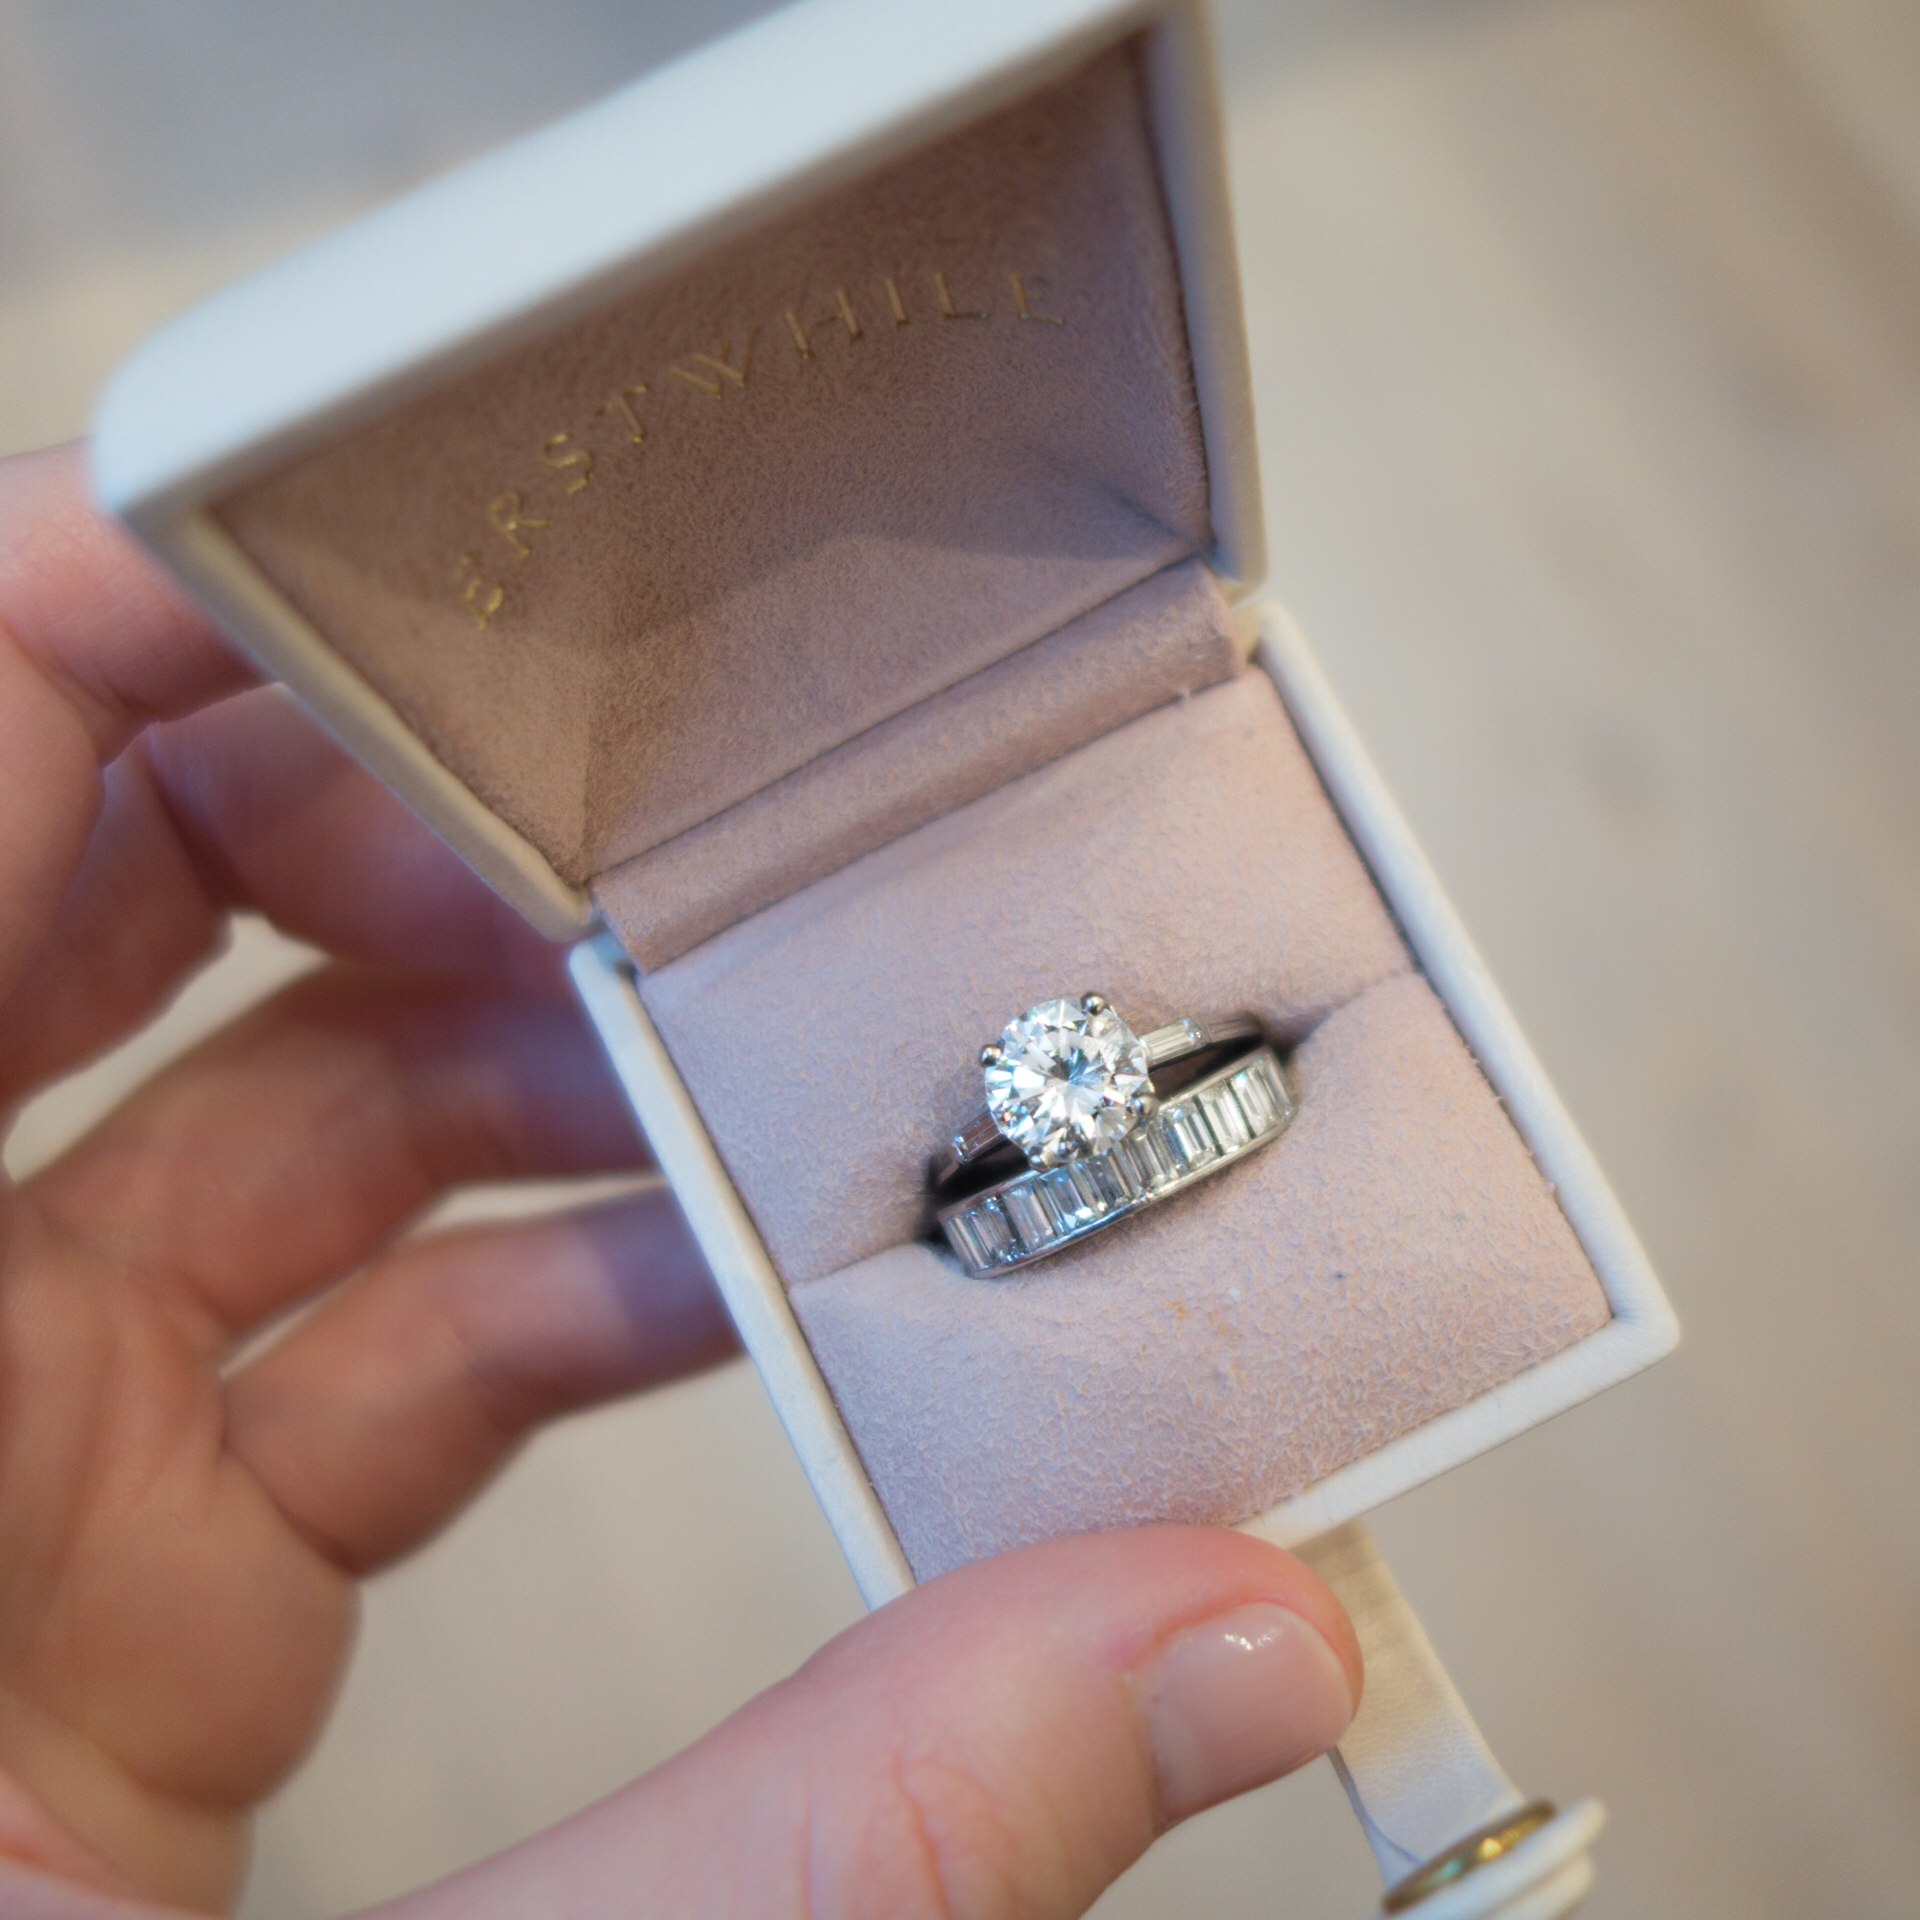 Vintage 1940s Tiffany Co engagement ring set perfectly atop an